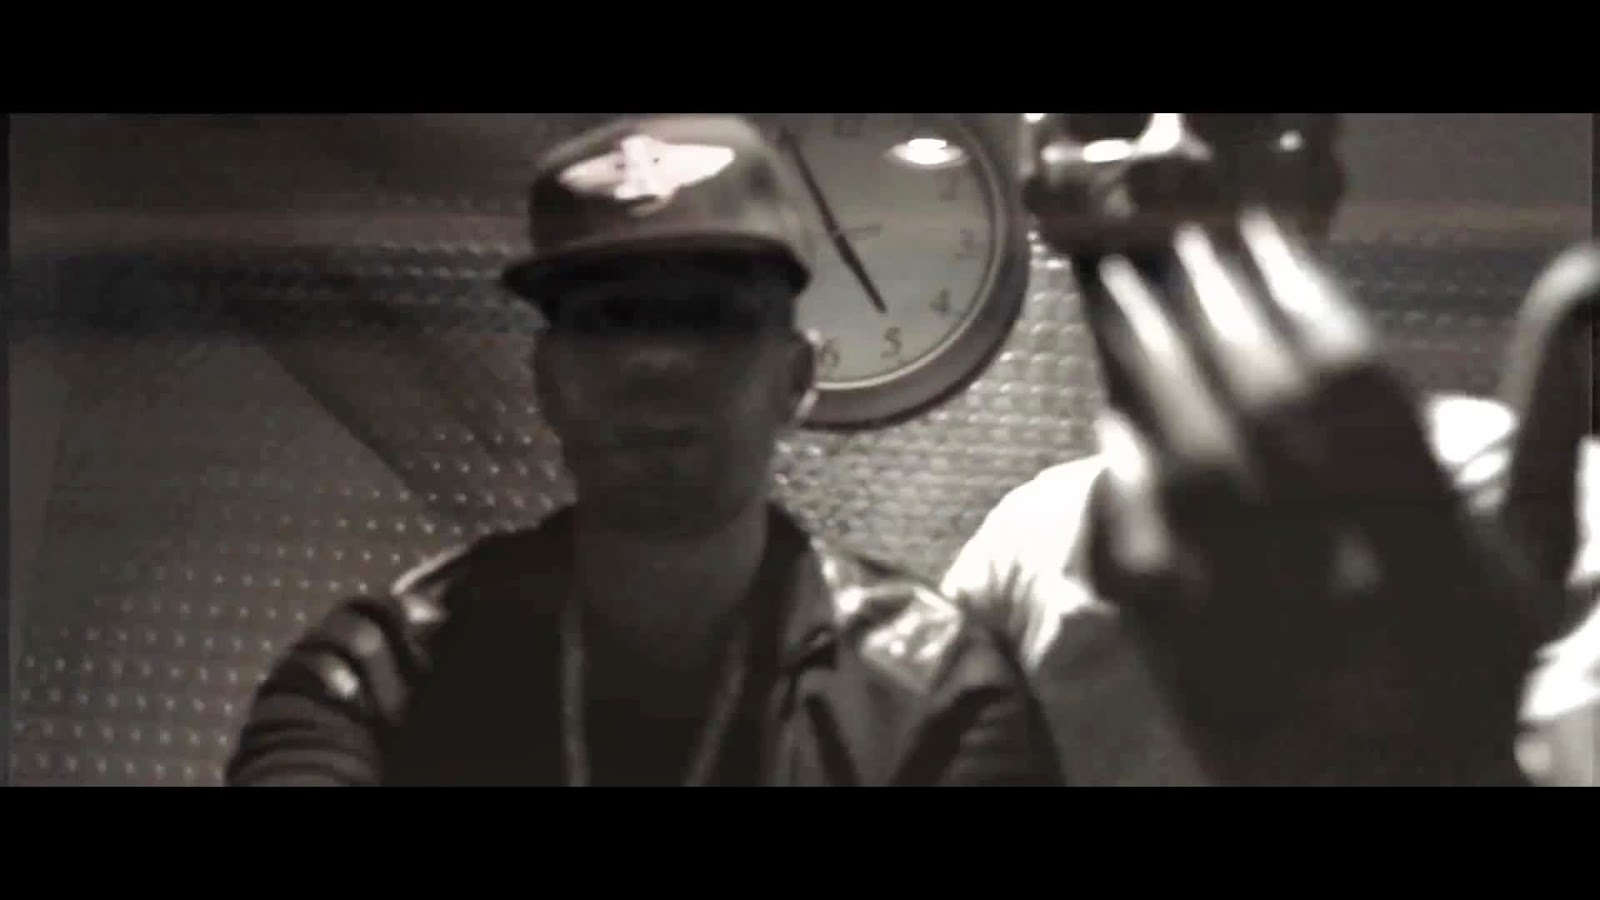 Dj drama right back ft jeezy young thug rich homie quan